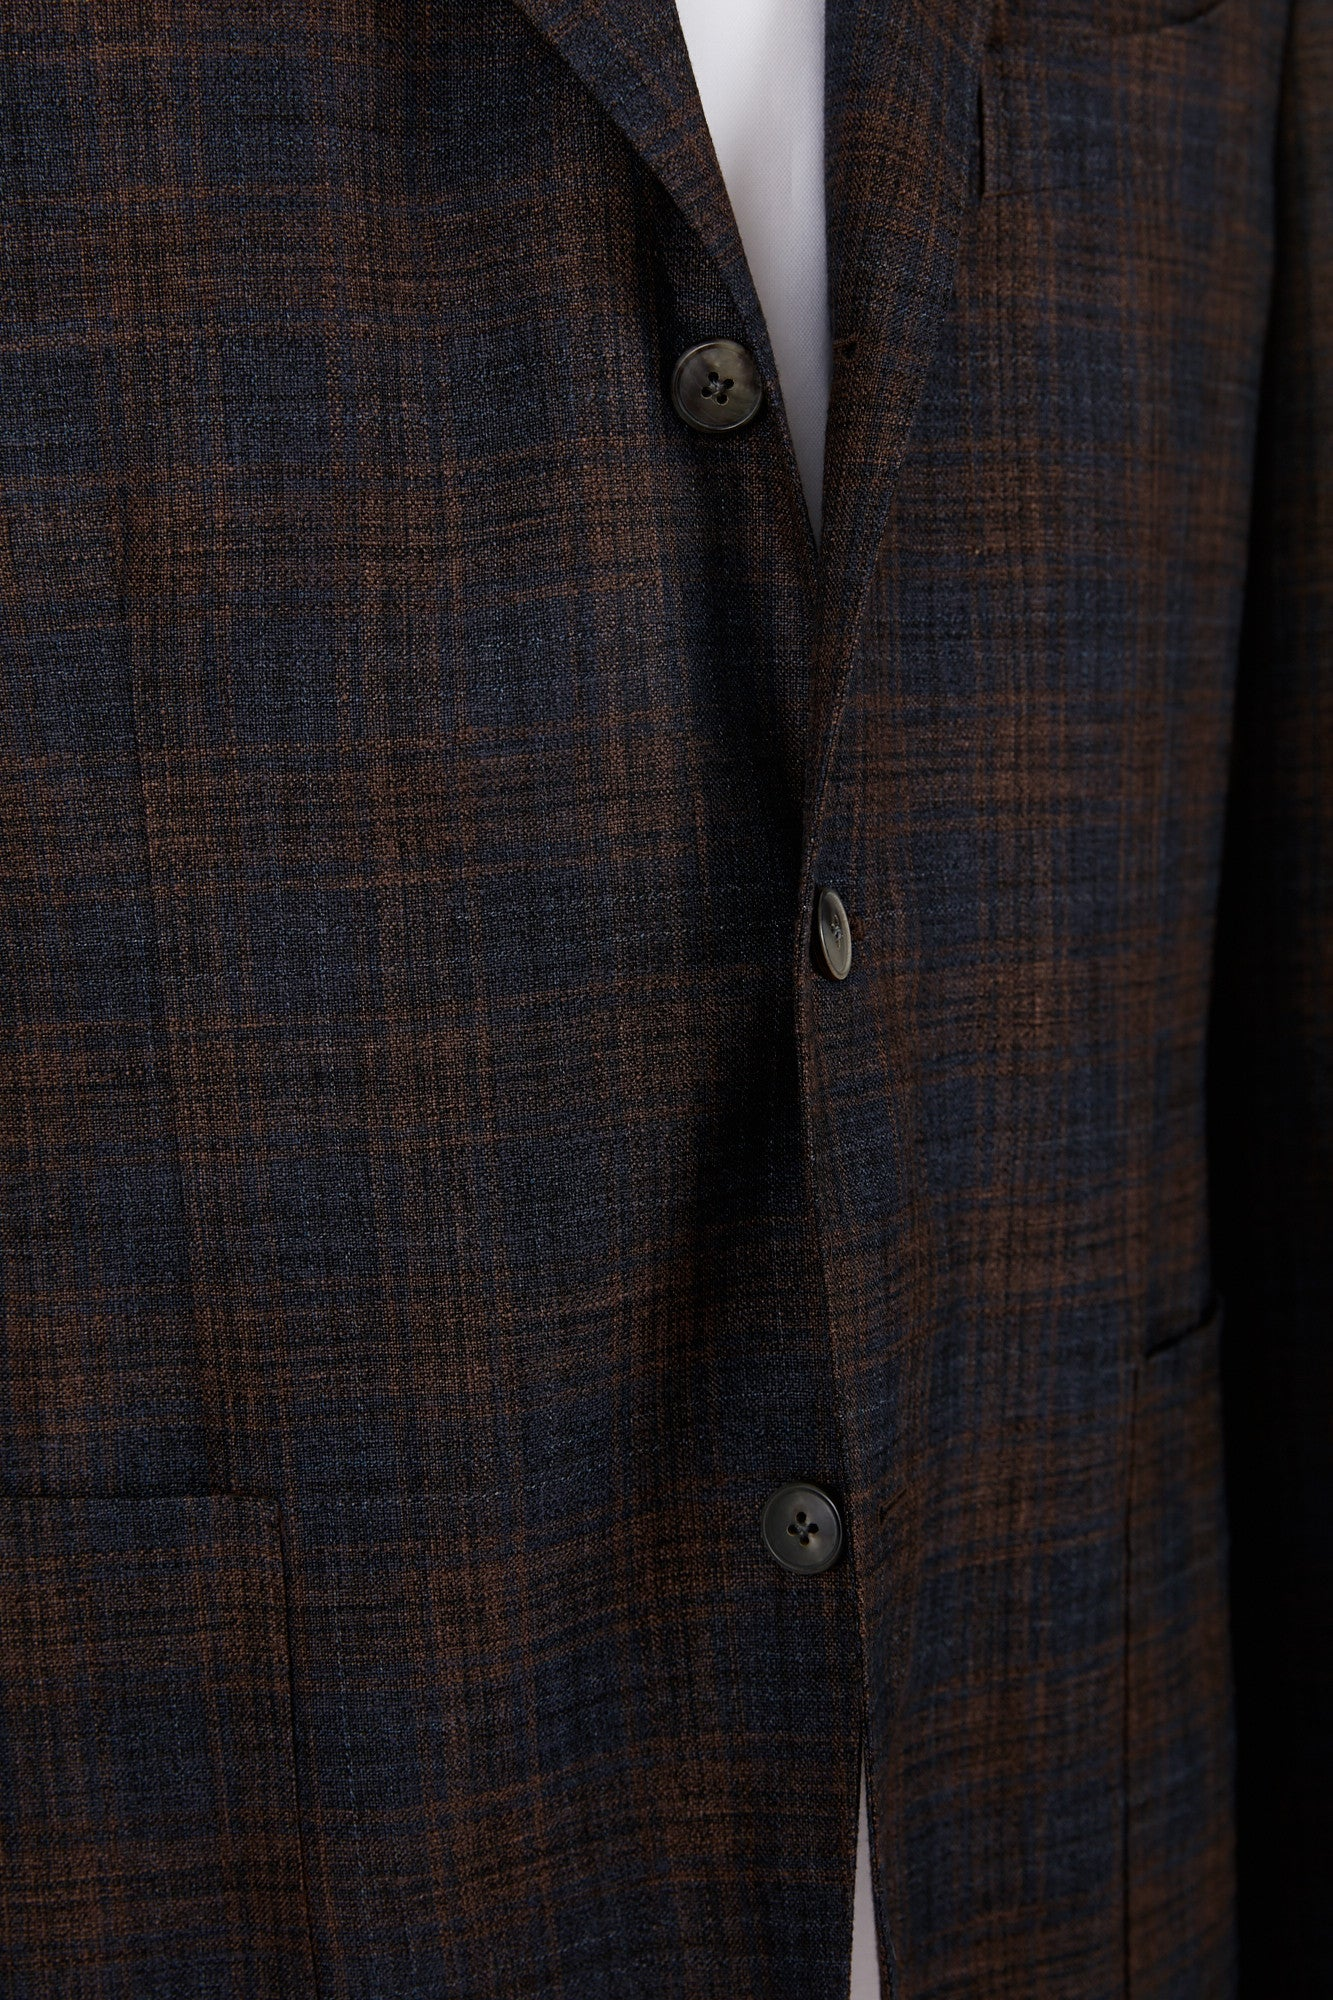 Boglioli 'K-Jacket' Brown & Navy Check Sport Jacket - Blazer, Sport Coat -Model: N2902E.